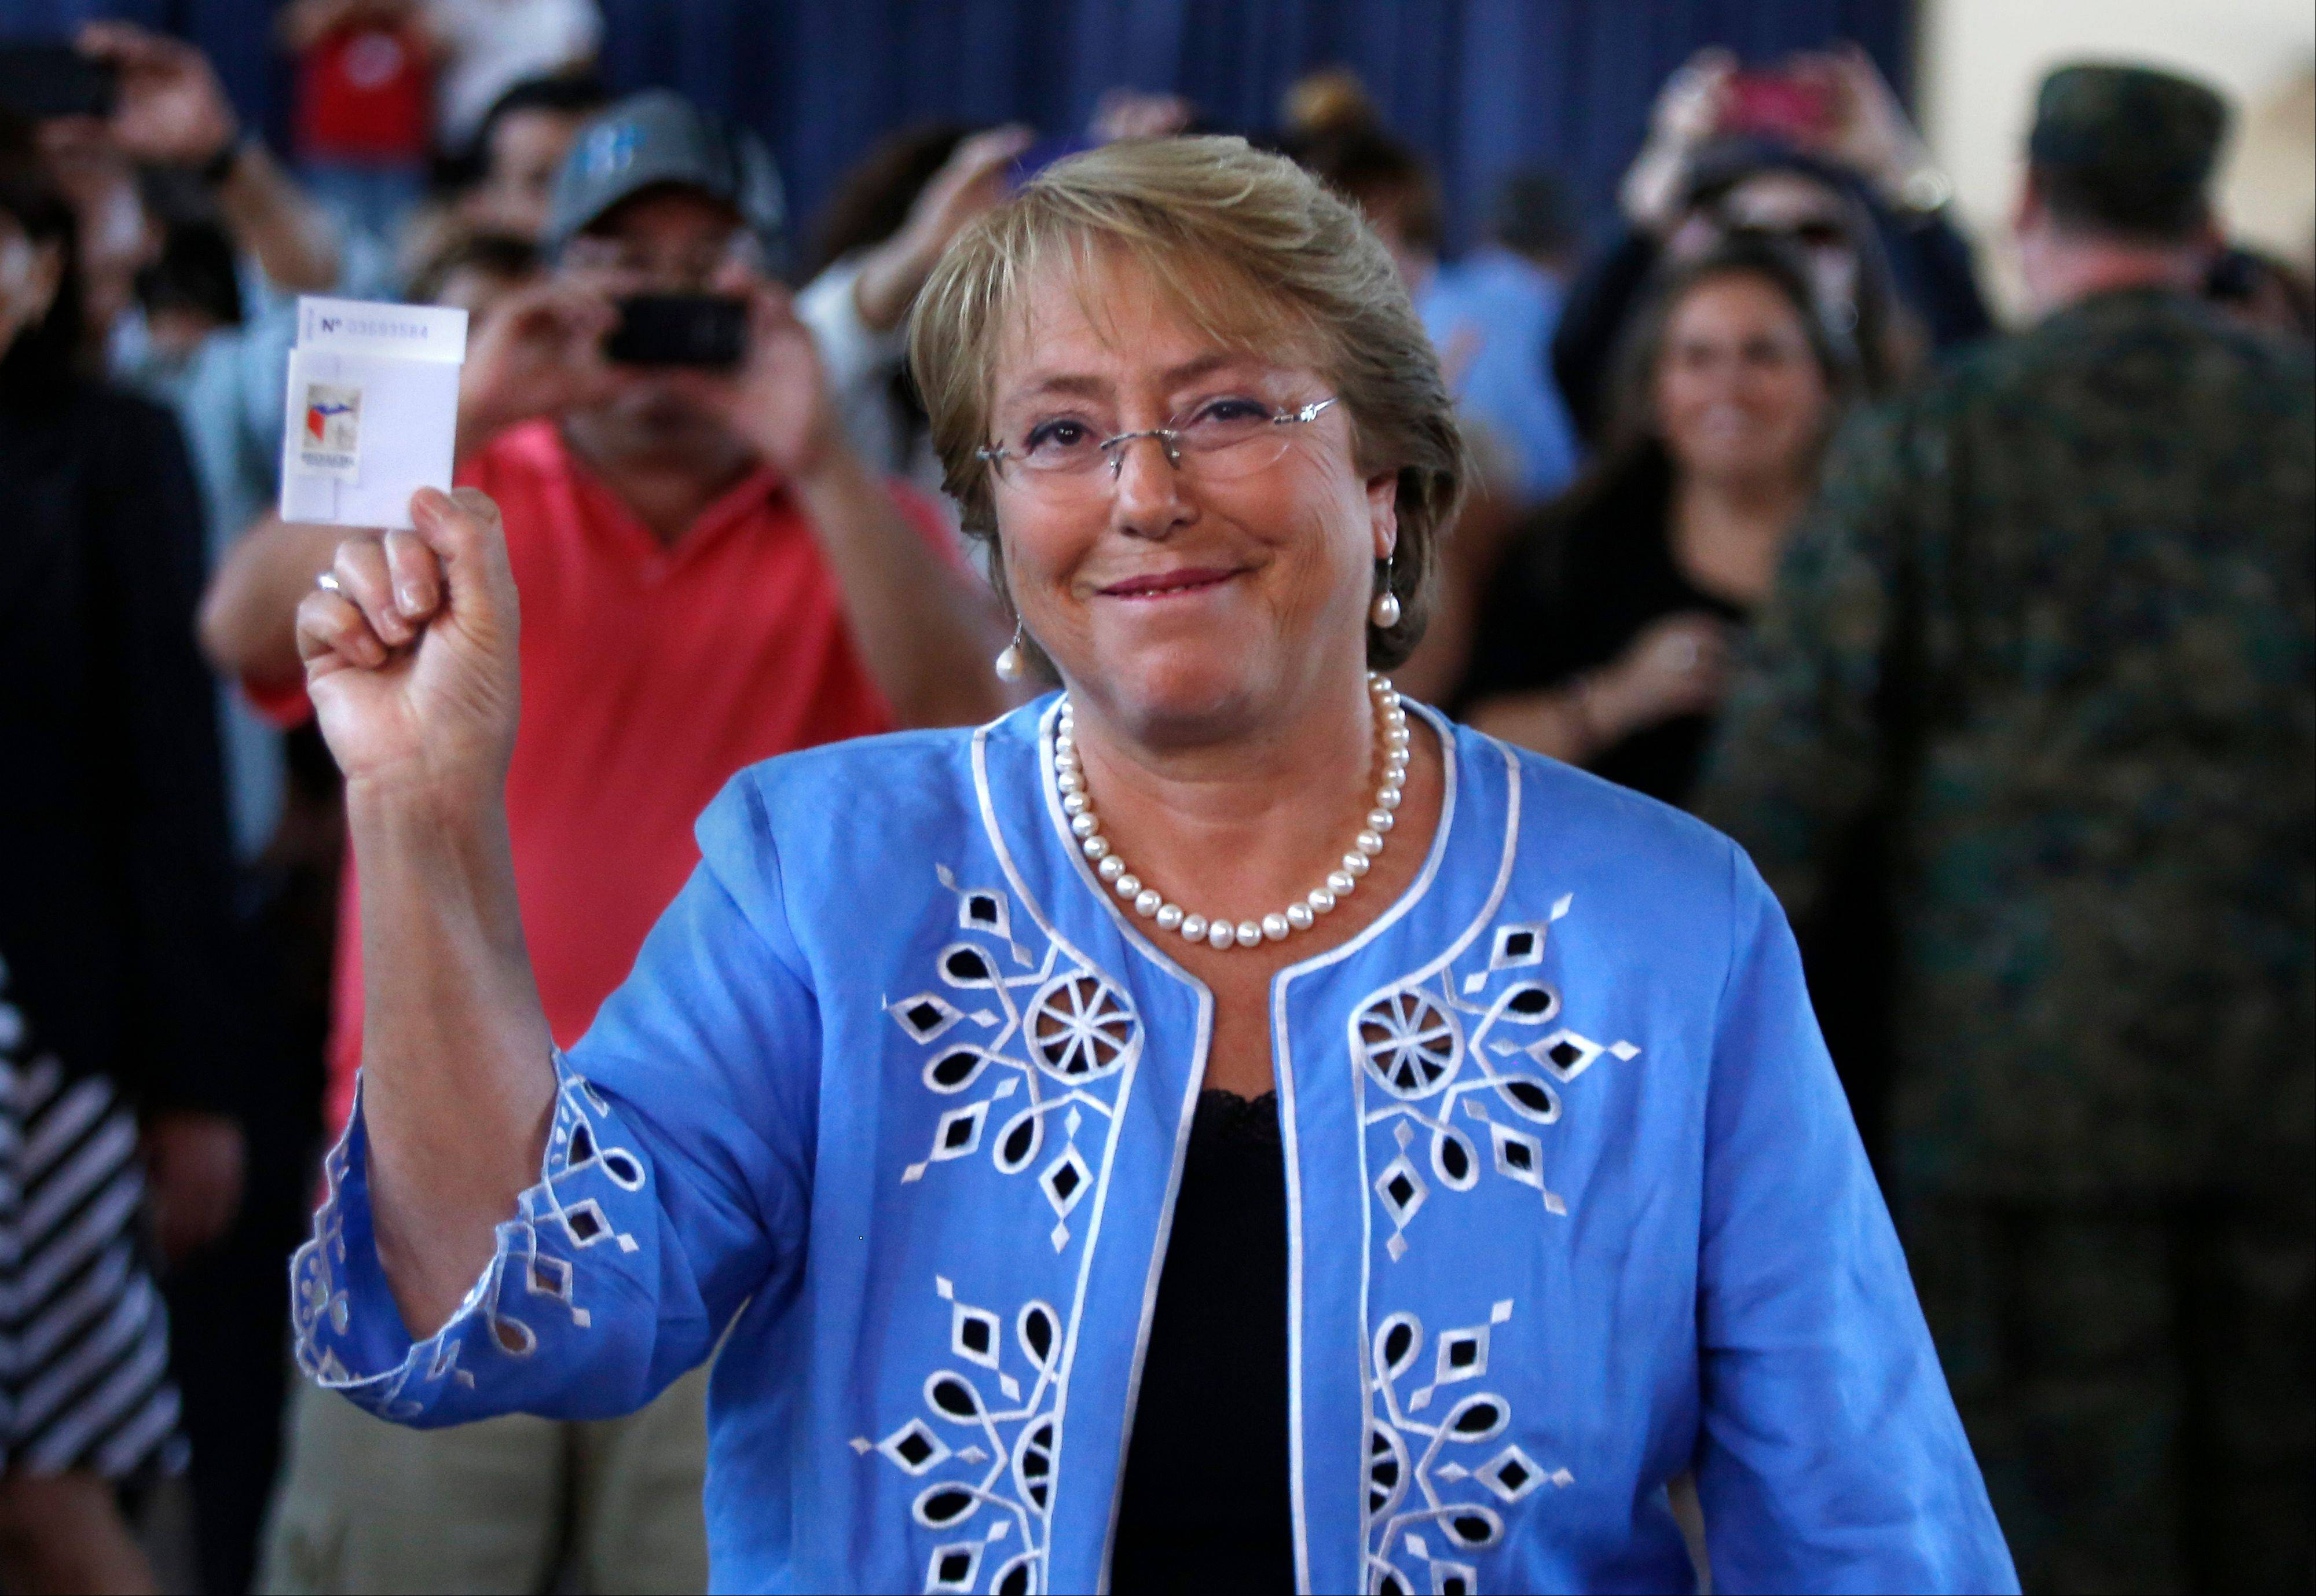 Presidential candidate and former President Michelle Bachelet holds up her ballot before casting it during presidential elections in Santiago, Chile, Sunday. Bachelet easily won re-election, beating conservative rival Evelyn Matthei in Sunday�s runoff vote.